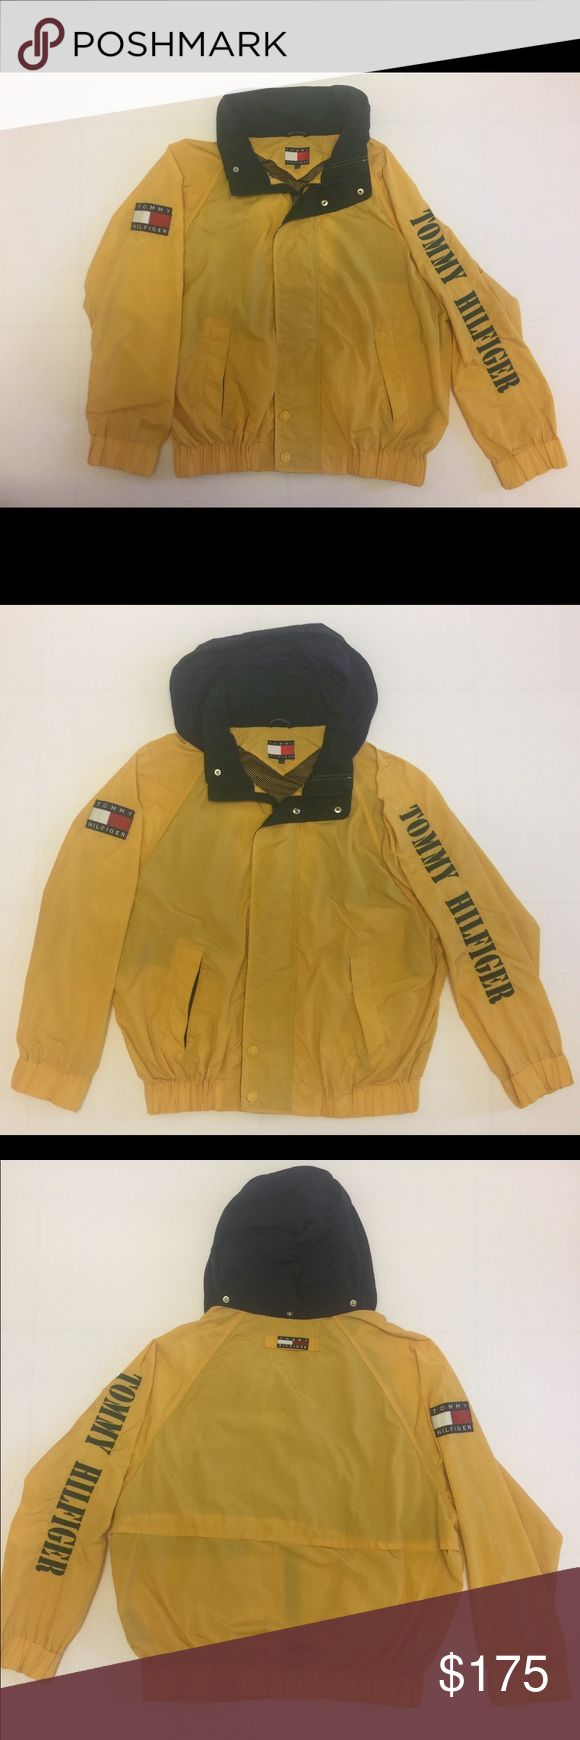 "Vintage Tommy Hilfiger Windbreaker Jacket L 90's Vintage Tommy Hilfiger Windbreaker Jacket. Men's L. Yellow jacket with Green embroidery. It's in excellent condition for it's age. I do point out all the tiny ""flaws"" or spots it has. Please see pictures for condition. I will be shipping out same day or next day! Tommy Hilfiger Jackets & Coats Windbreakers"